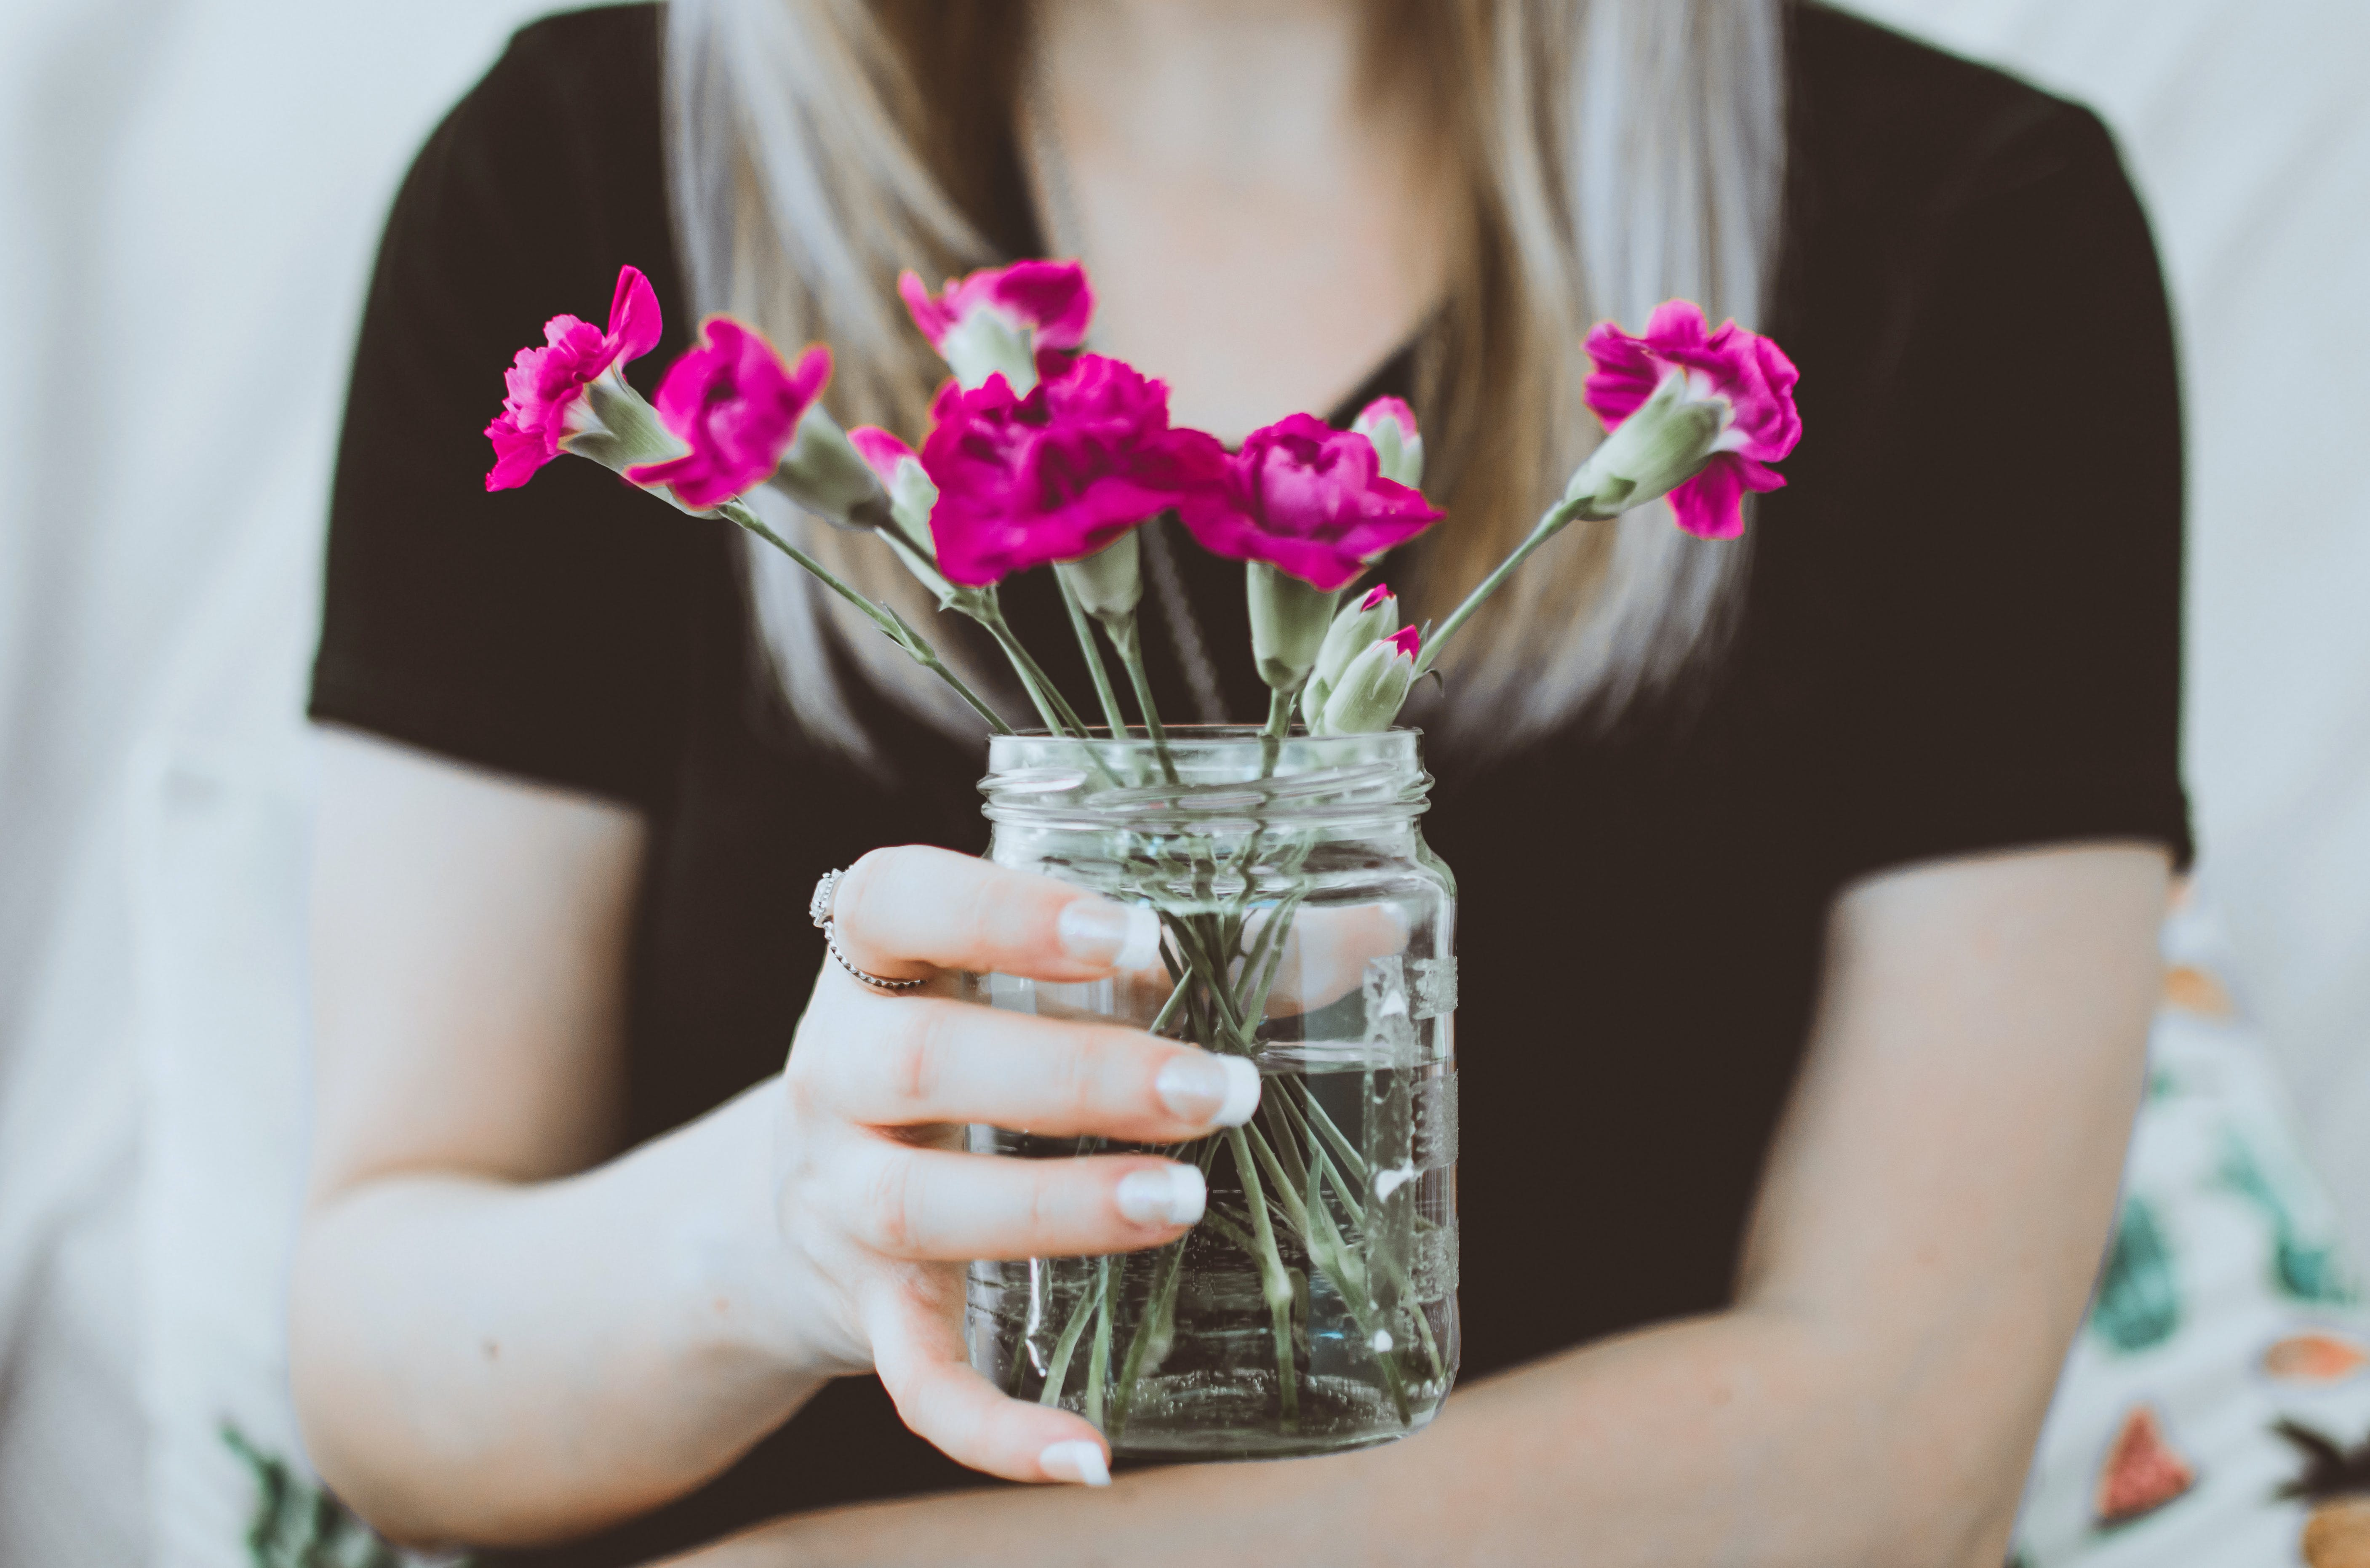 Person Holding Mason Jar With Purple Flowers Inside